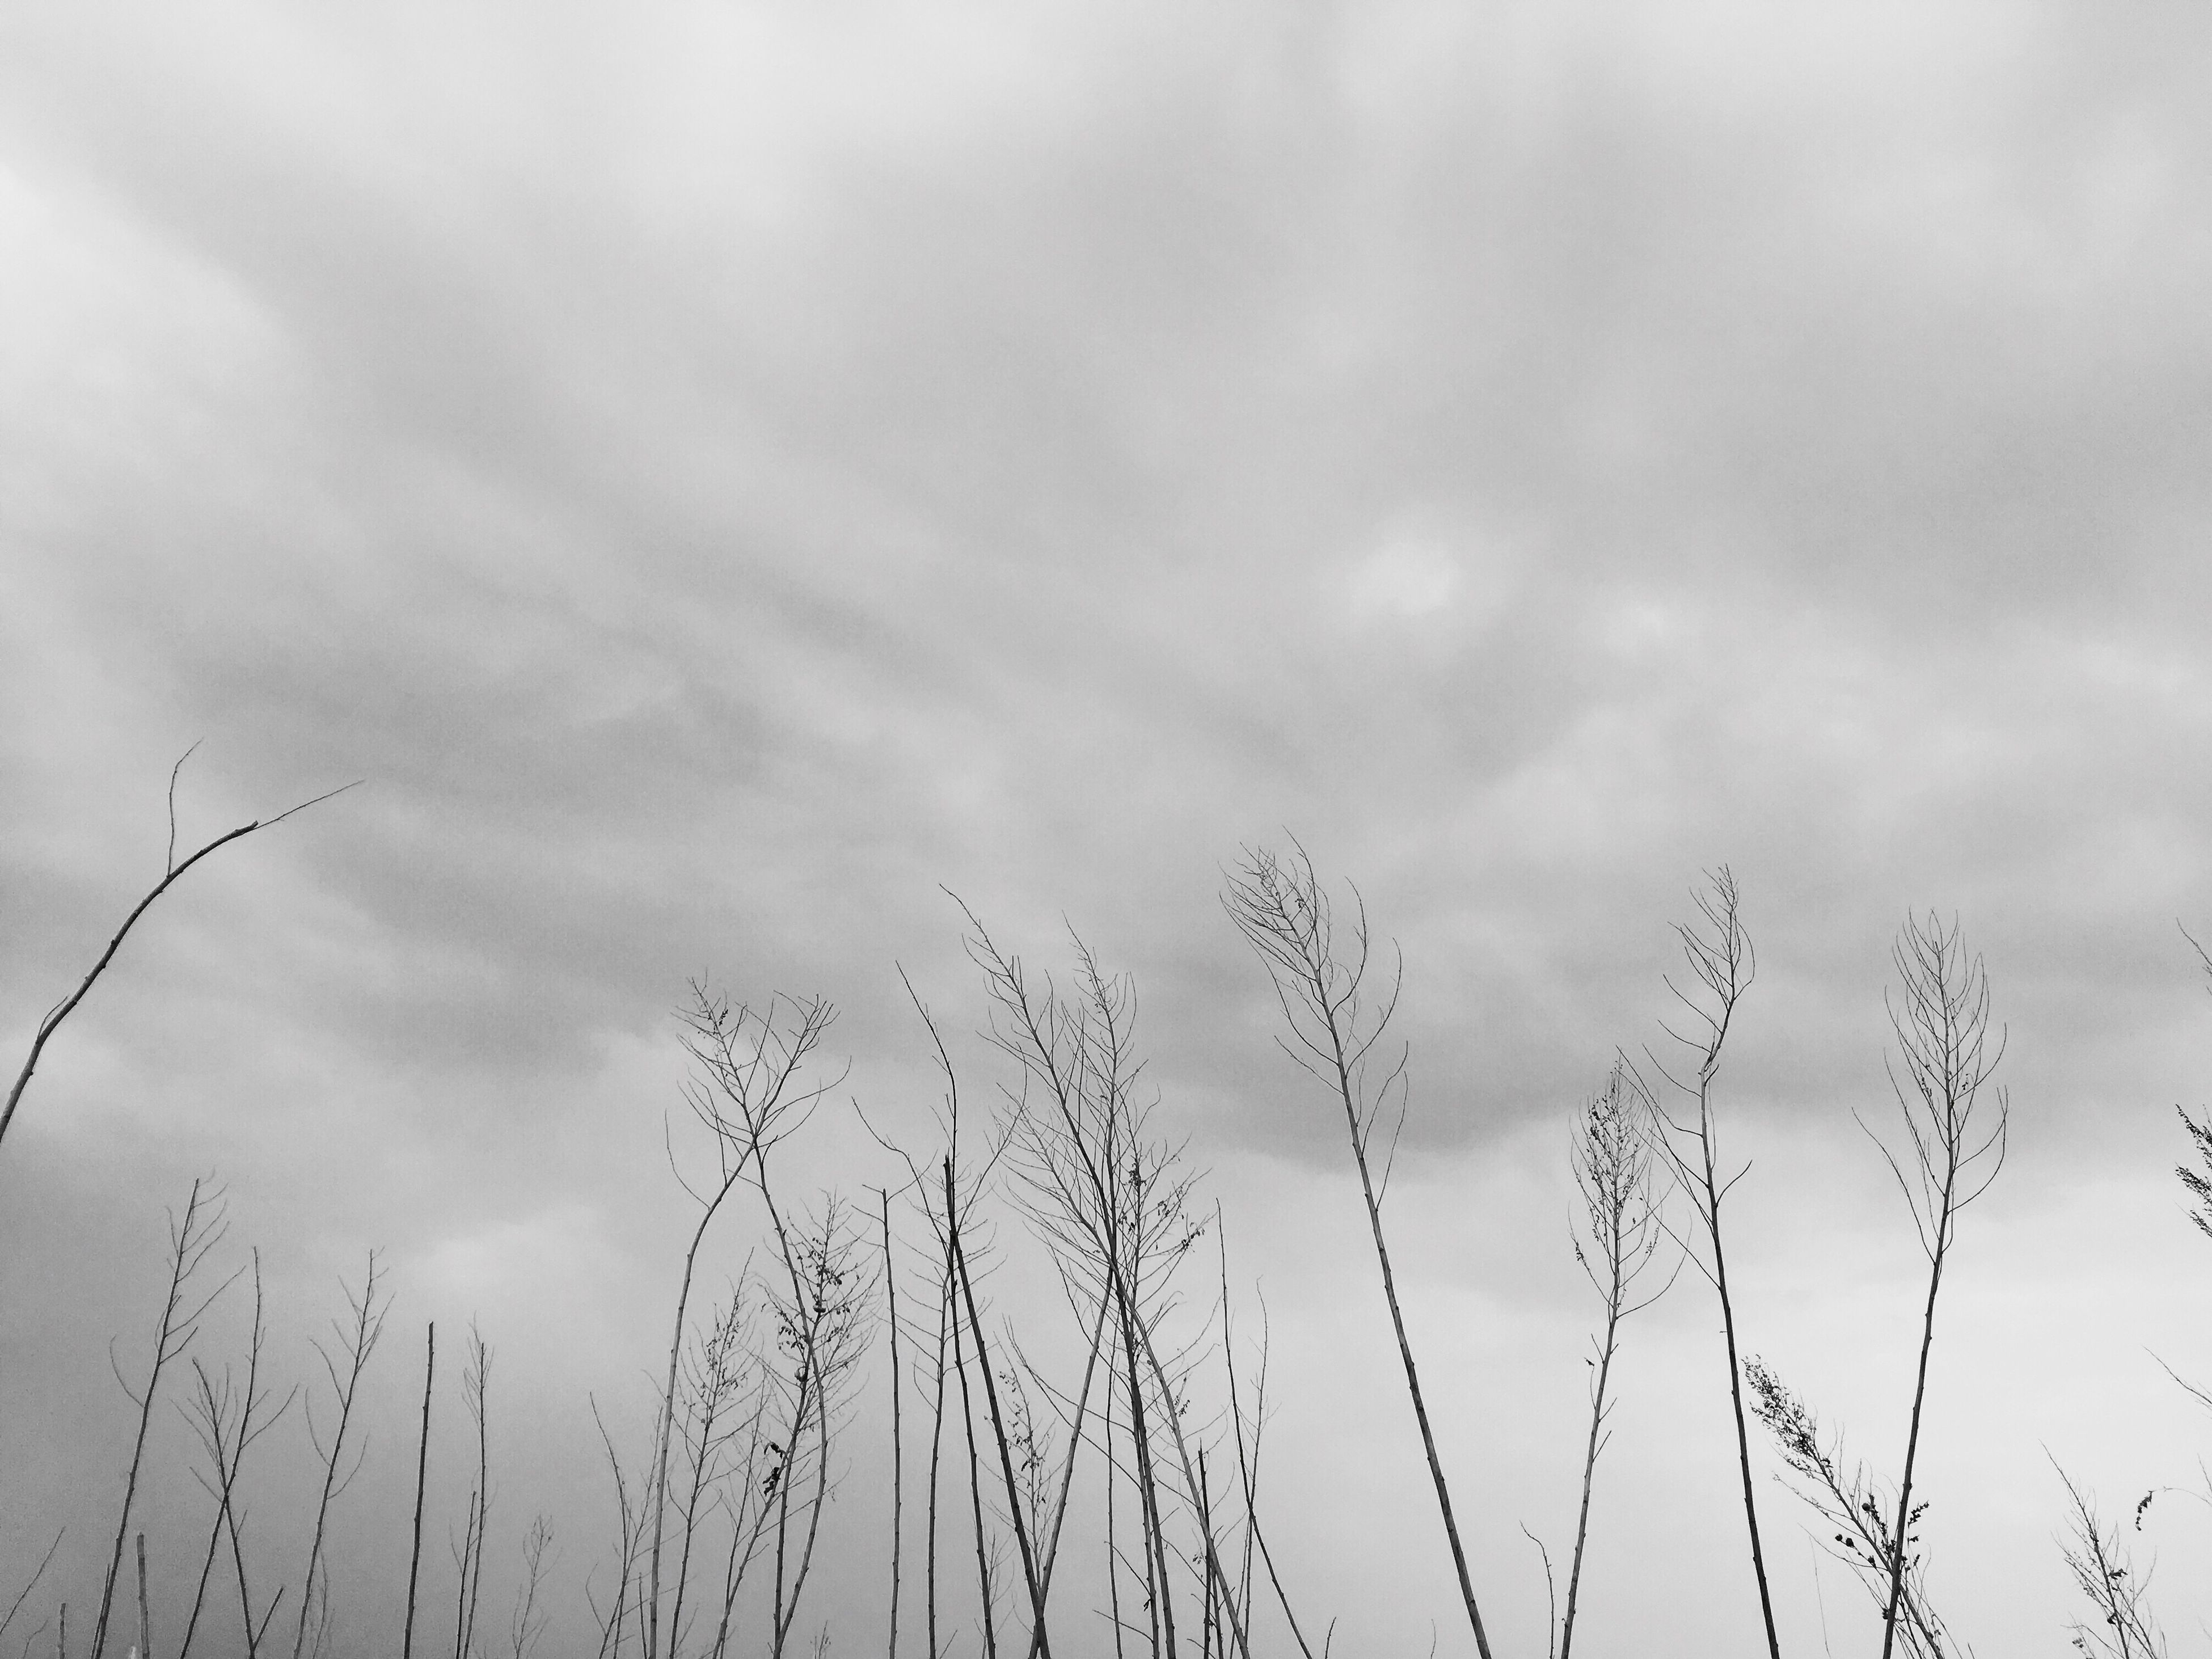 no people, cloud - sky, animal themes, bird, sky, low angle view, large group of animals, day, nature, outdoors, animals in the wild, flock of birds, close-up